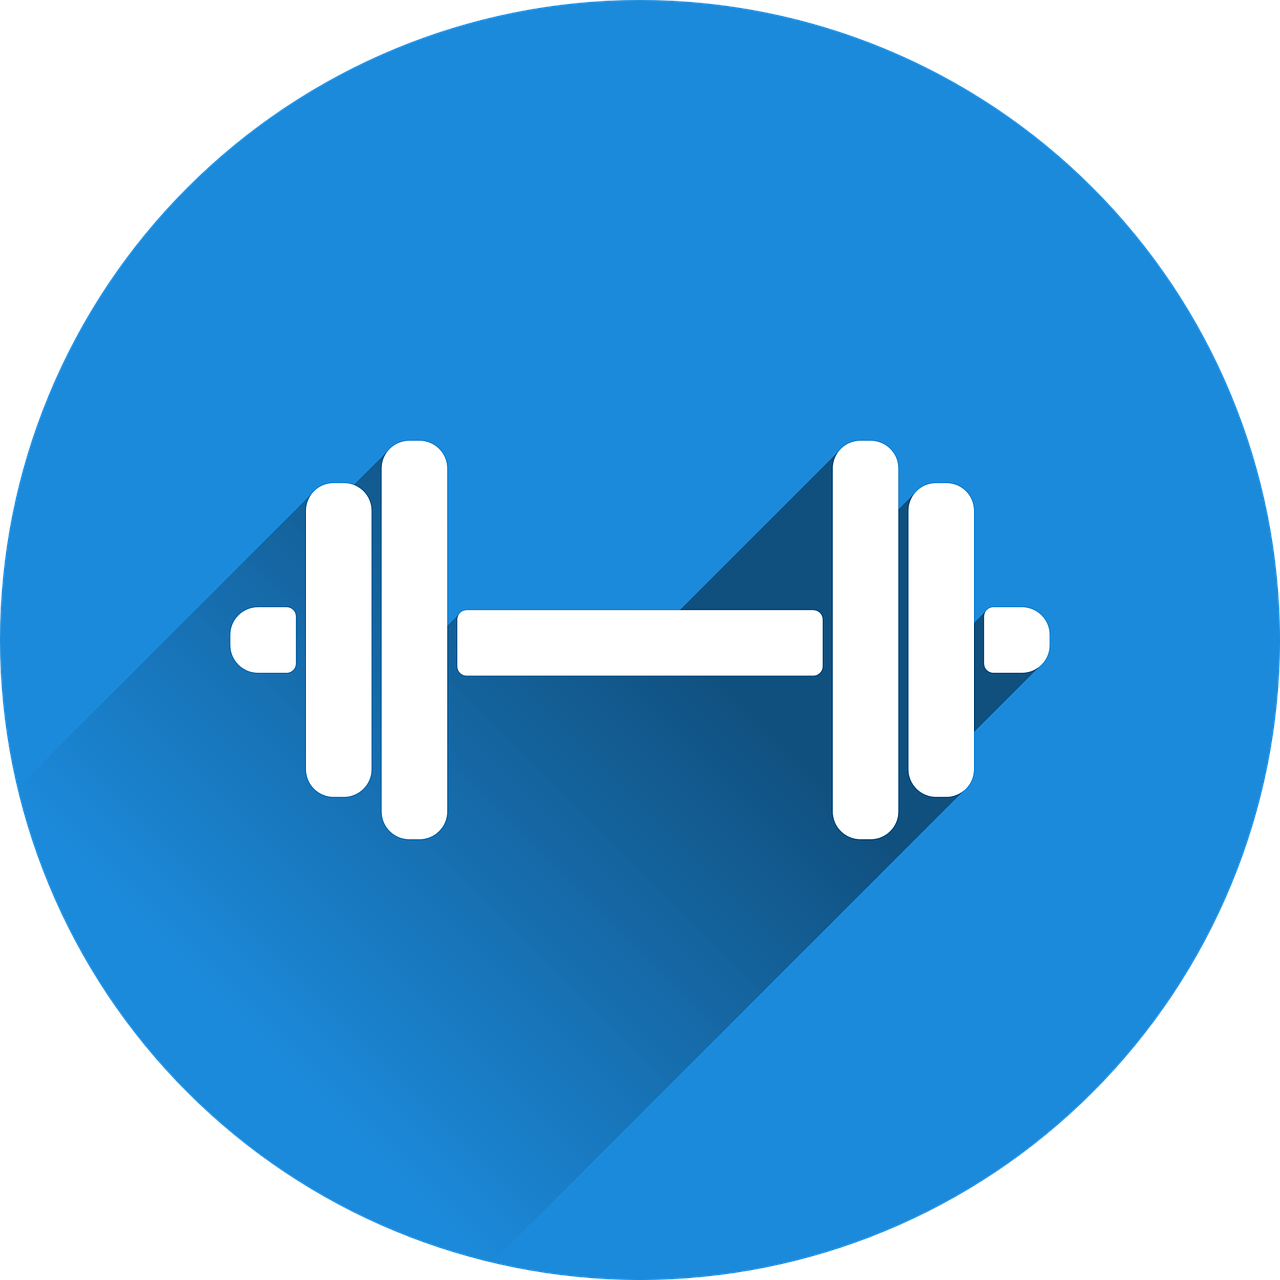 dumbbell-3160788_1280.png